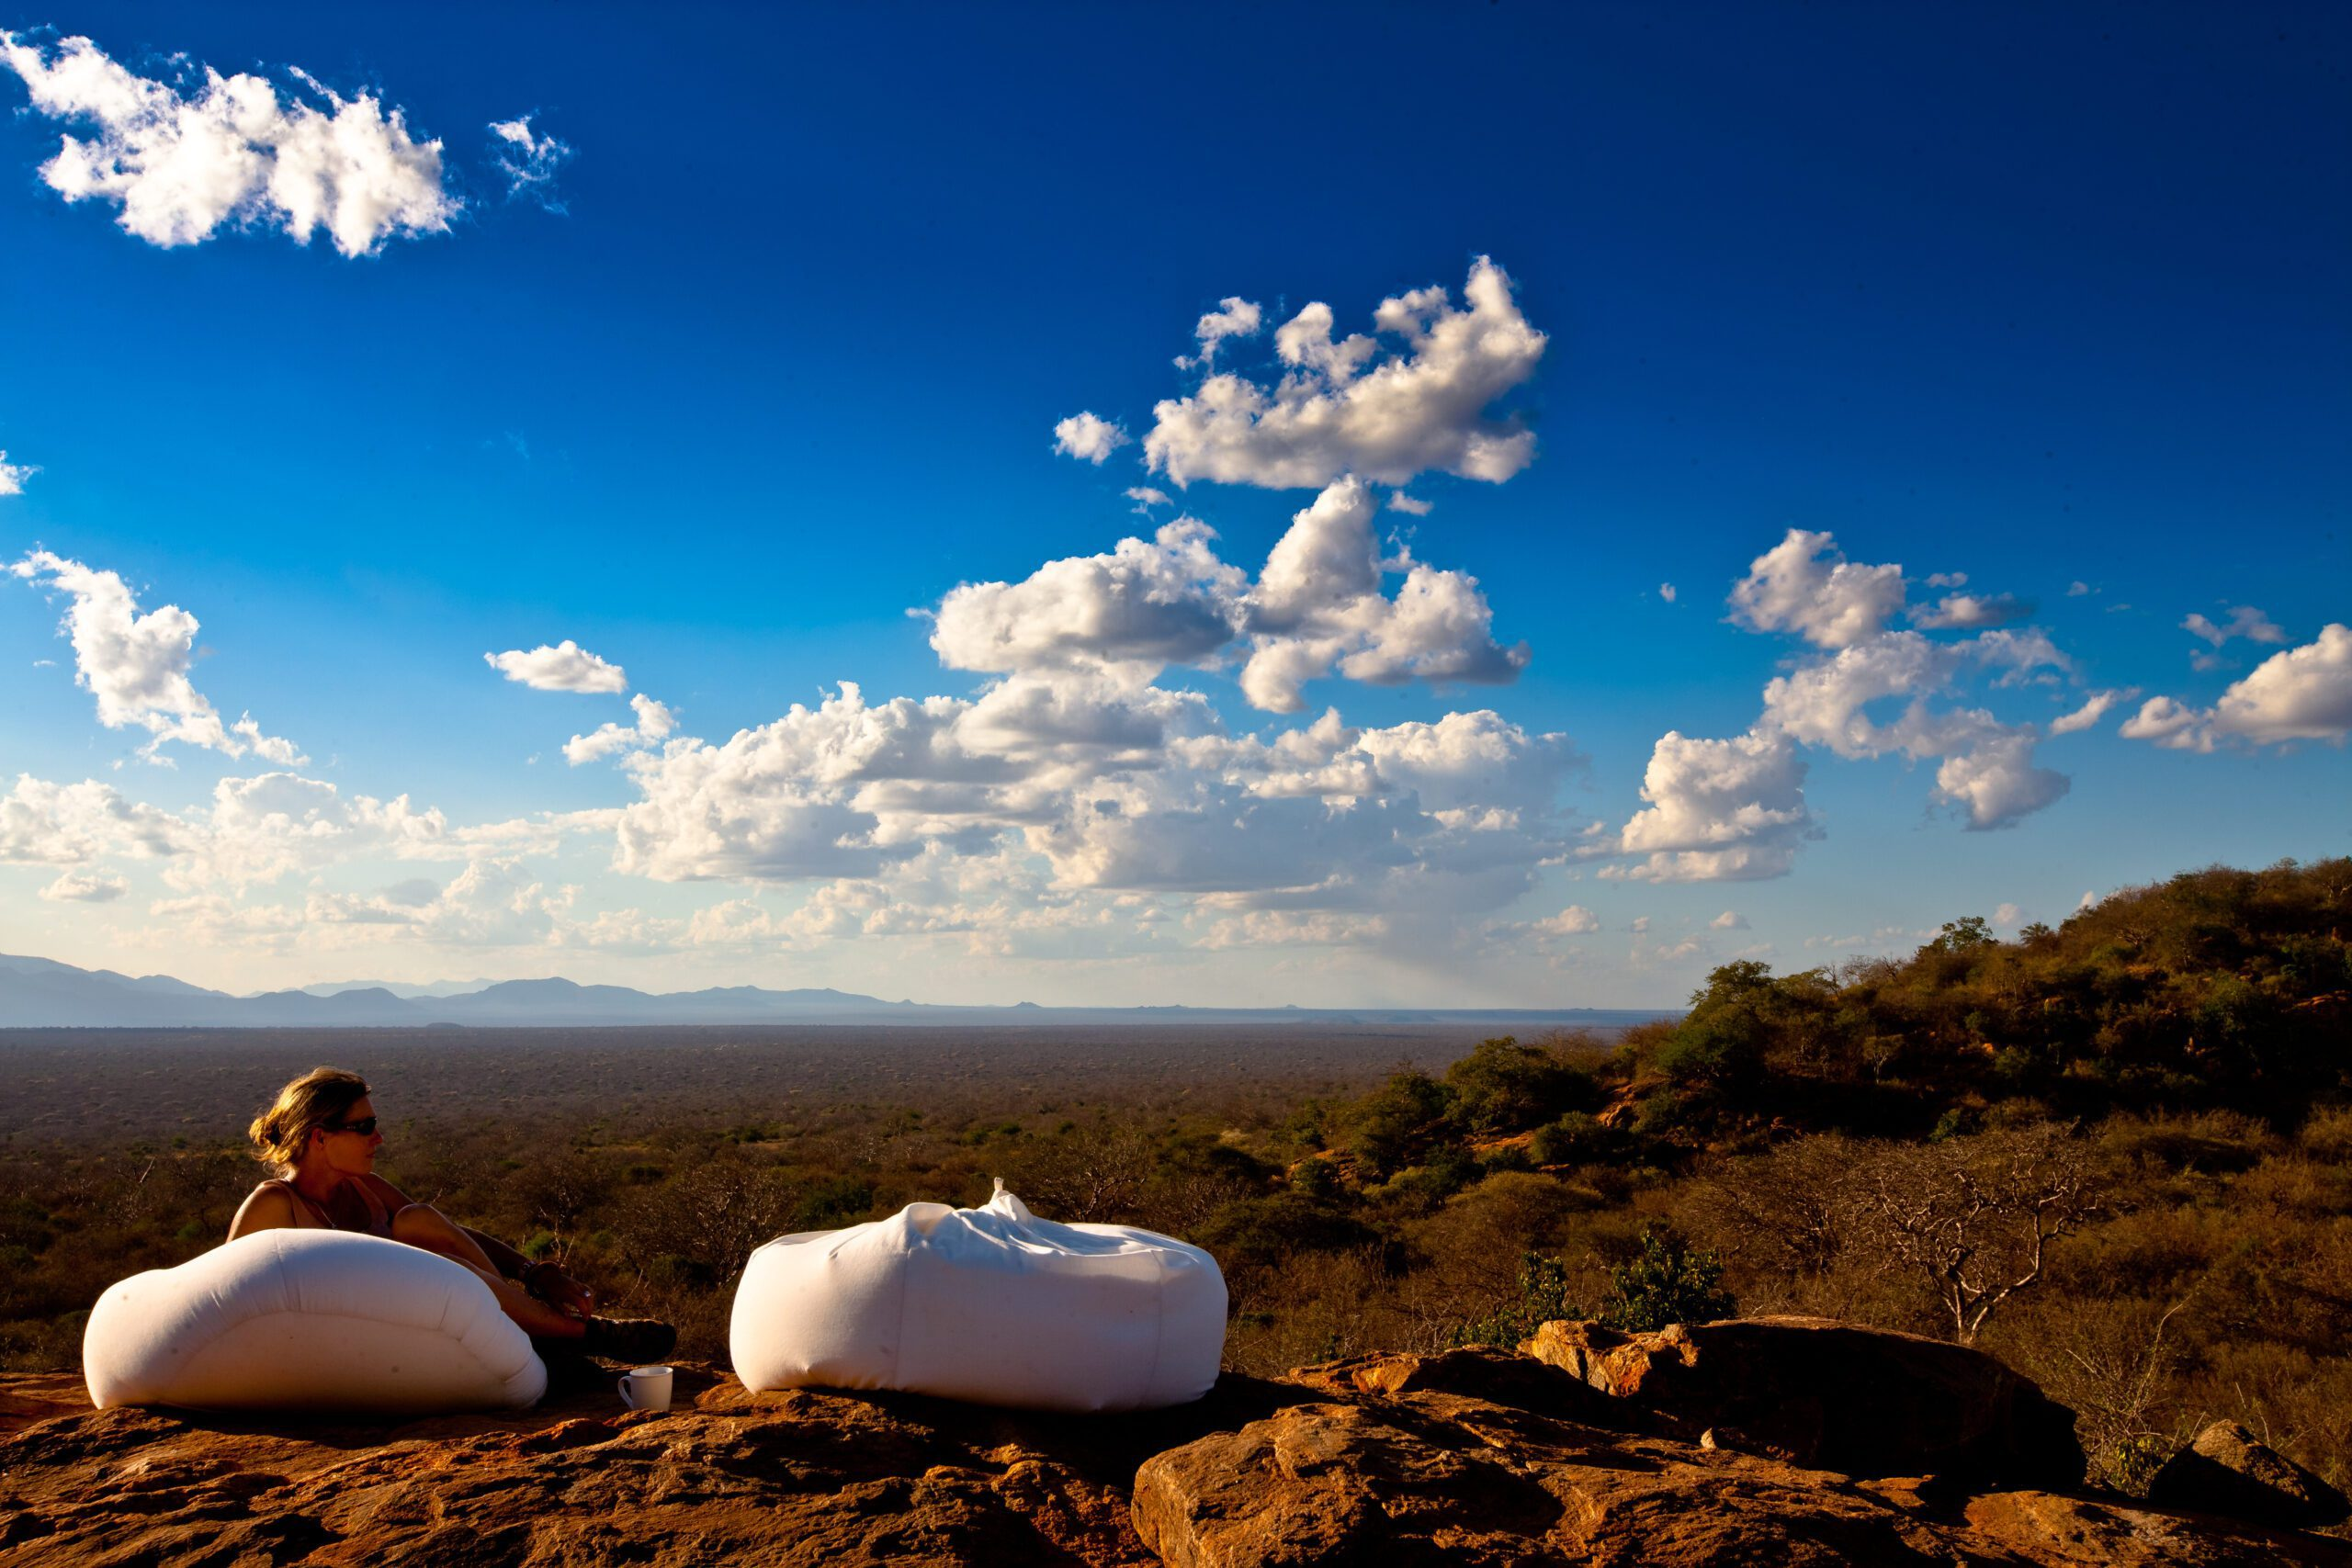 perfect blue sky with fluffy white clouds and two white bean bags set up to enjoy drinks.